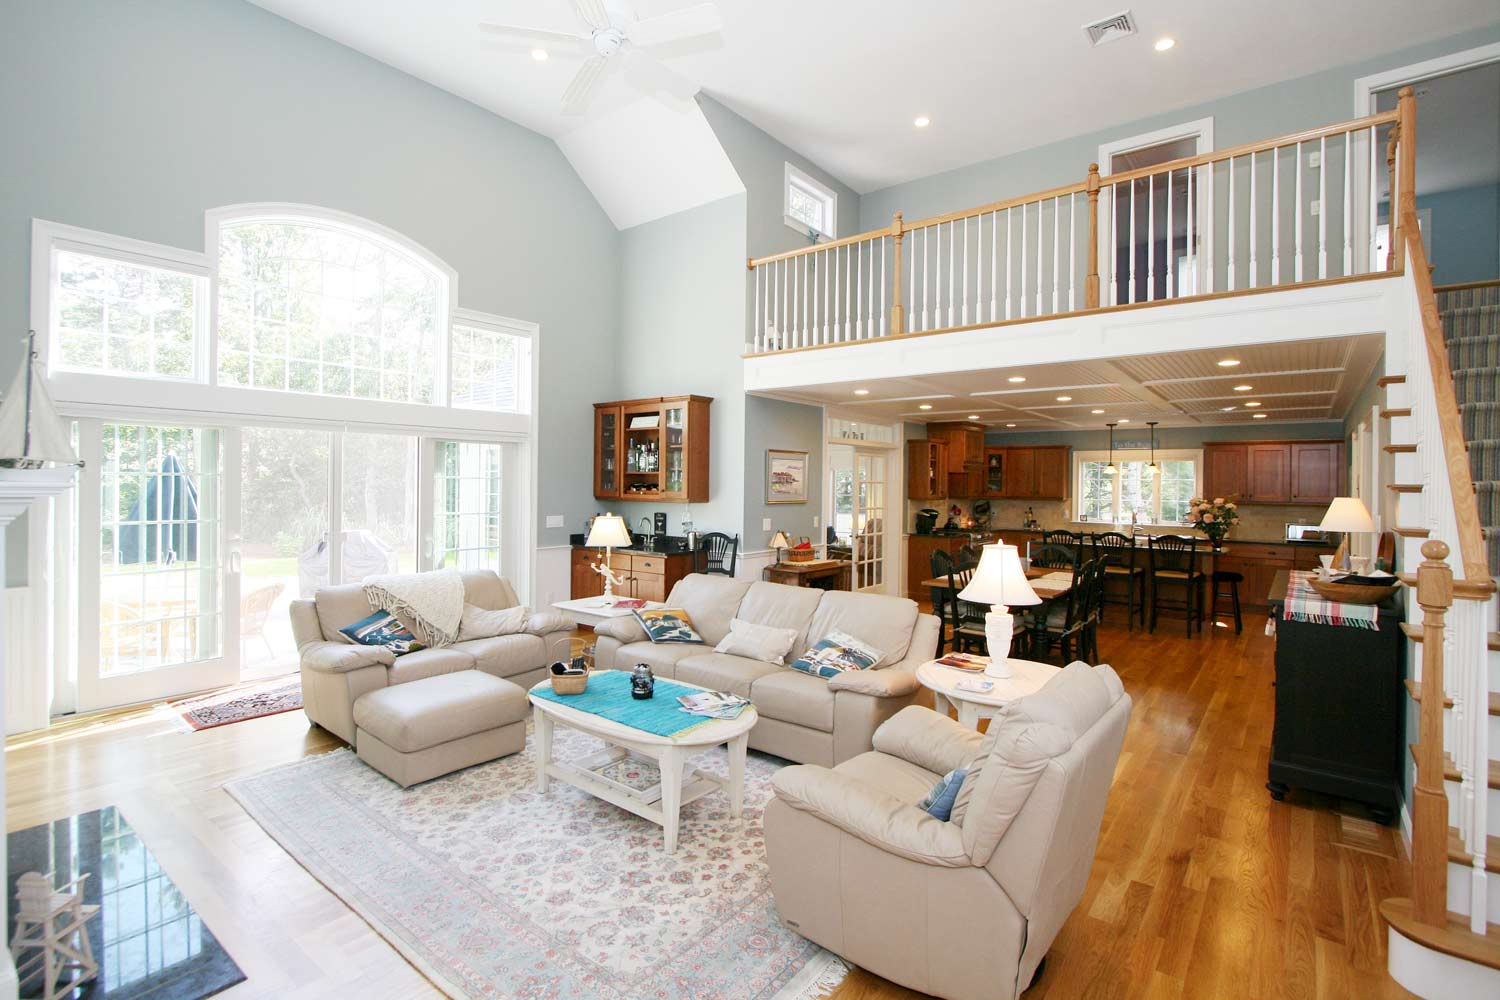 Awesome 18 Images Cape Cod Style House Interior Home Plans Blueprints